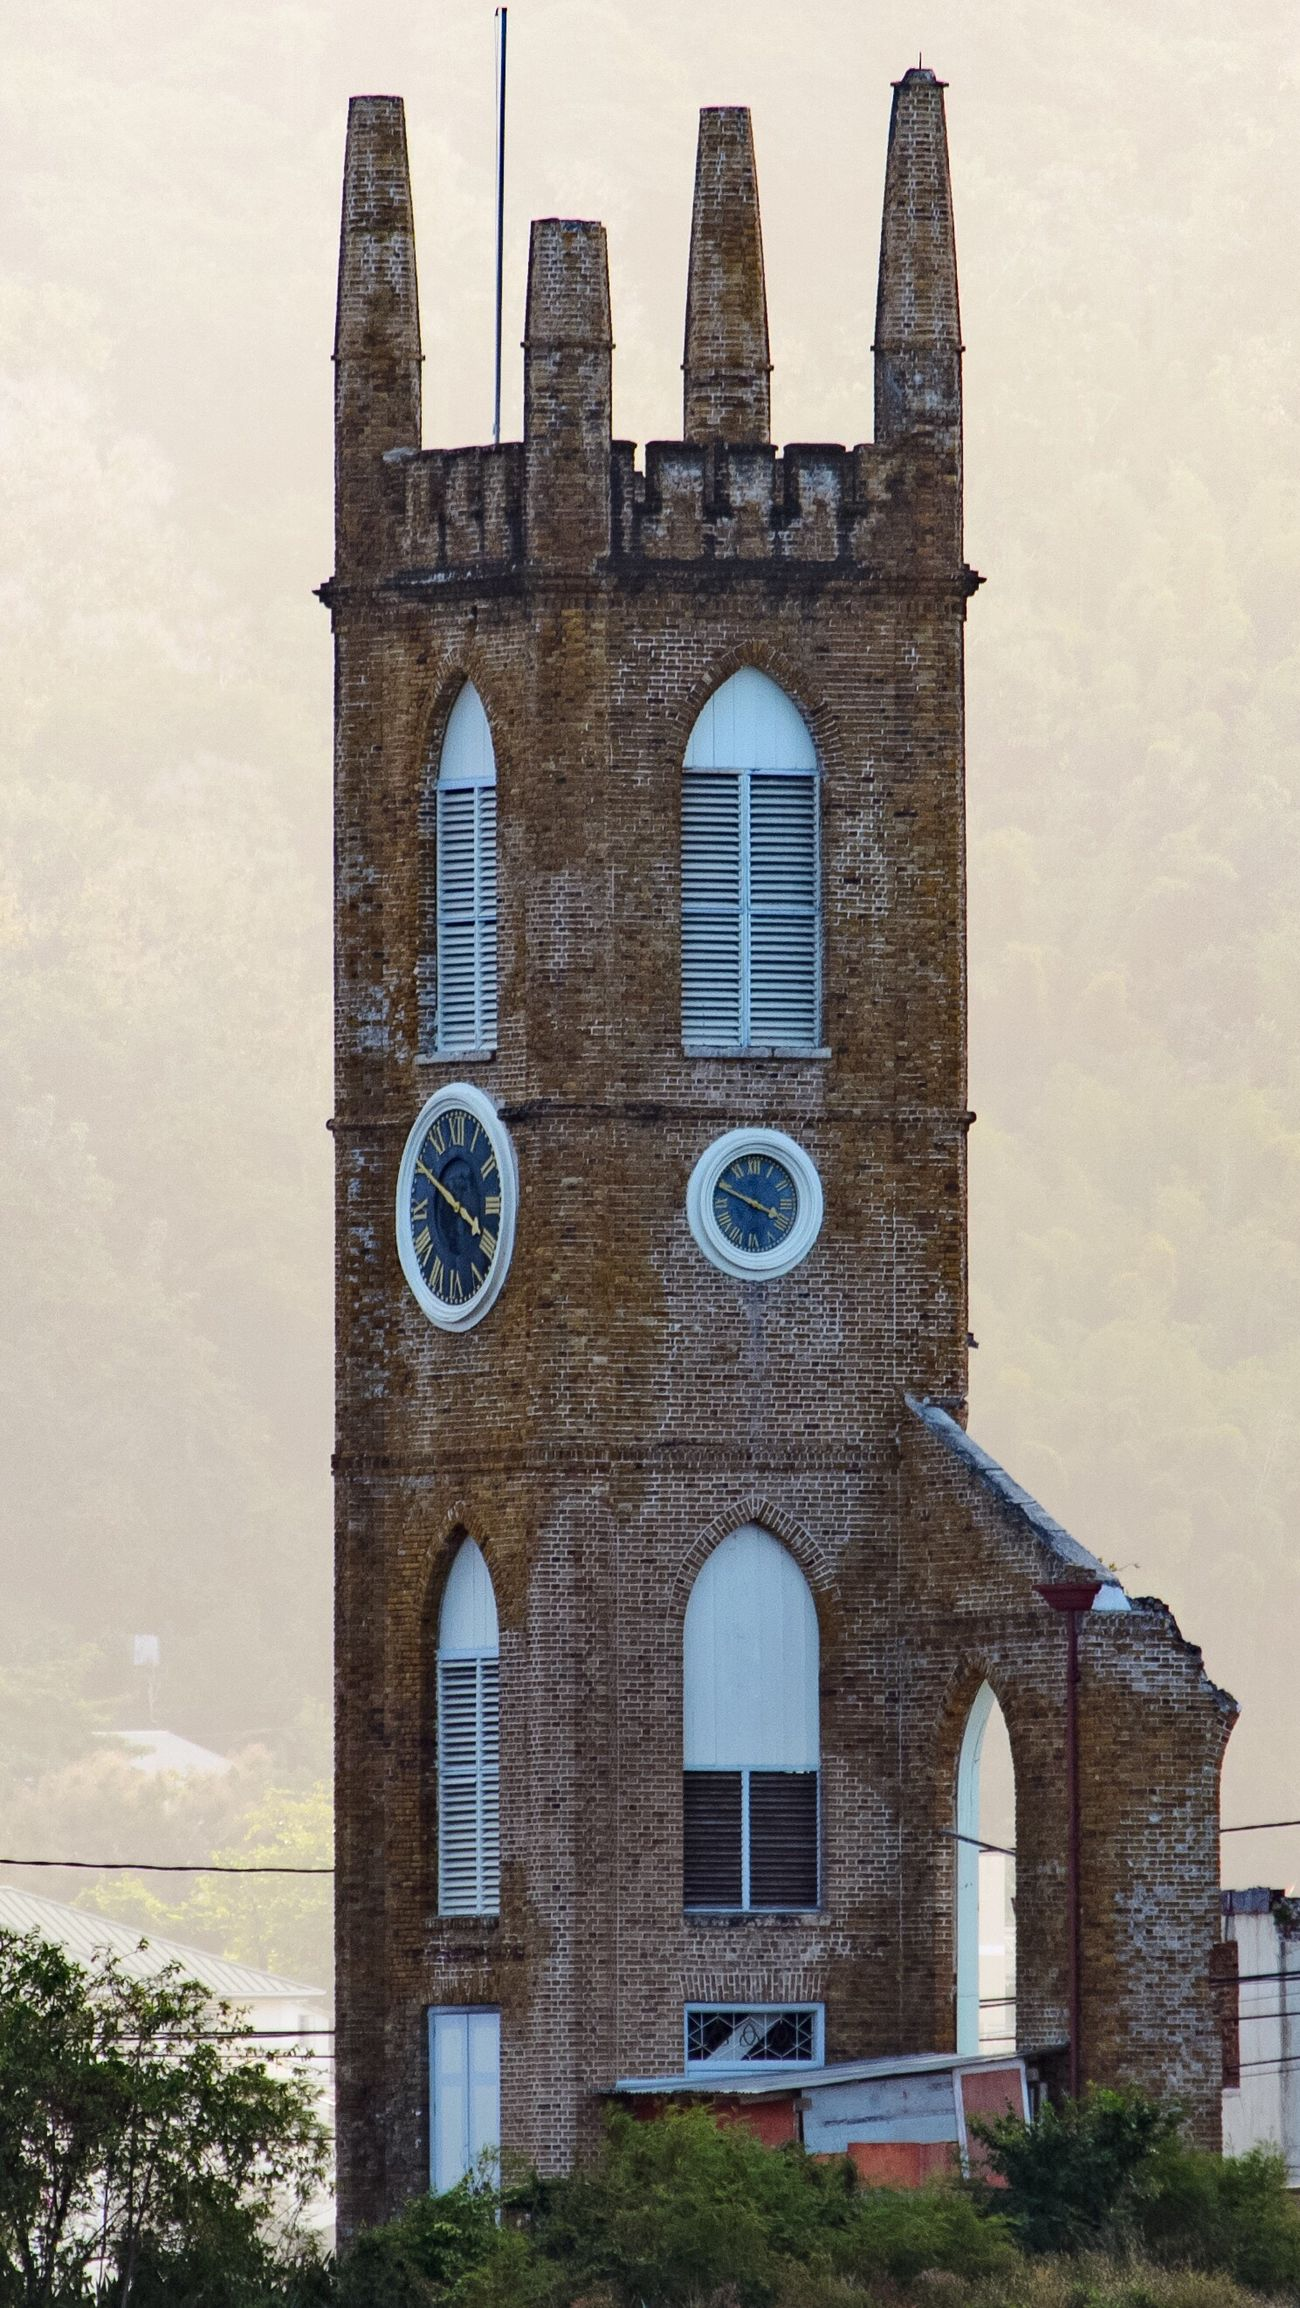 Grenada. Tower Clock Tower Mist Misty Morning Haze Brick Building Sunshine Culture Eye4photography  EyeEm Best Edits EyeEm Best Shots EyeEm Gallery EyeEm Masterclass EyeEmBestPics Outdoors No People Nikon EyeEm Taking Photos Travel Traveling Building Built Structure Urban Urban Landscape